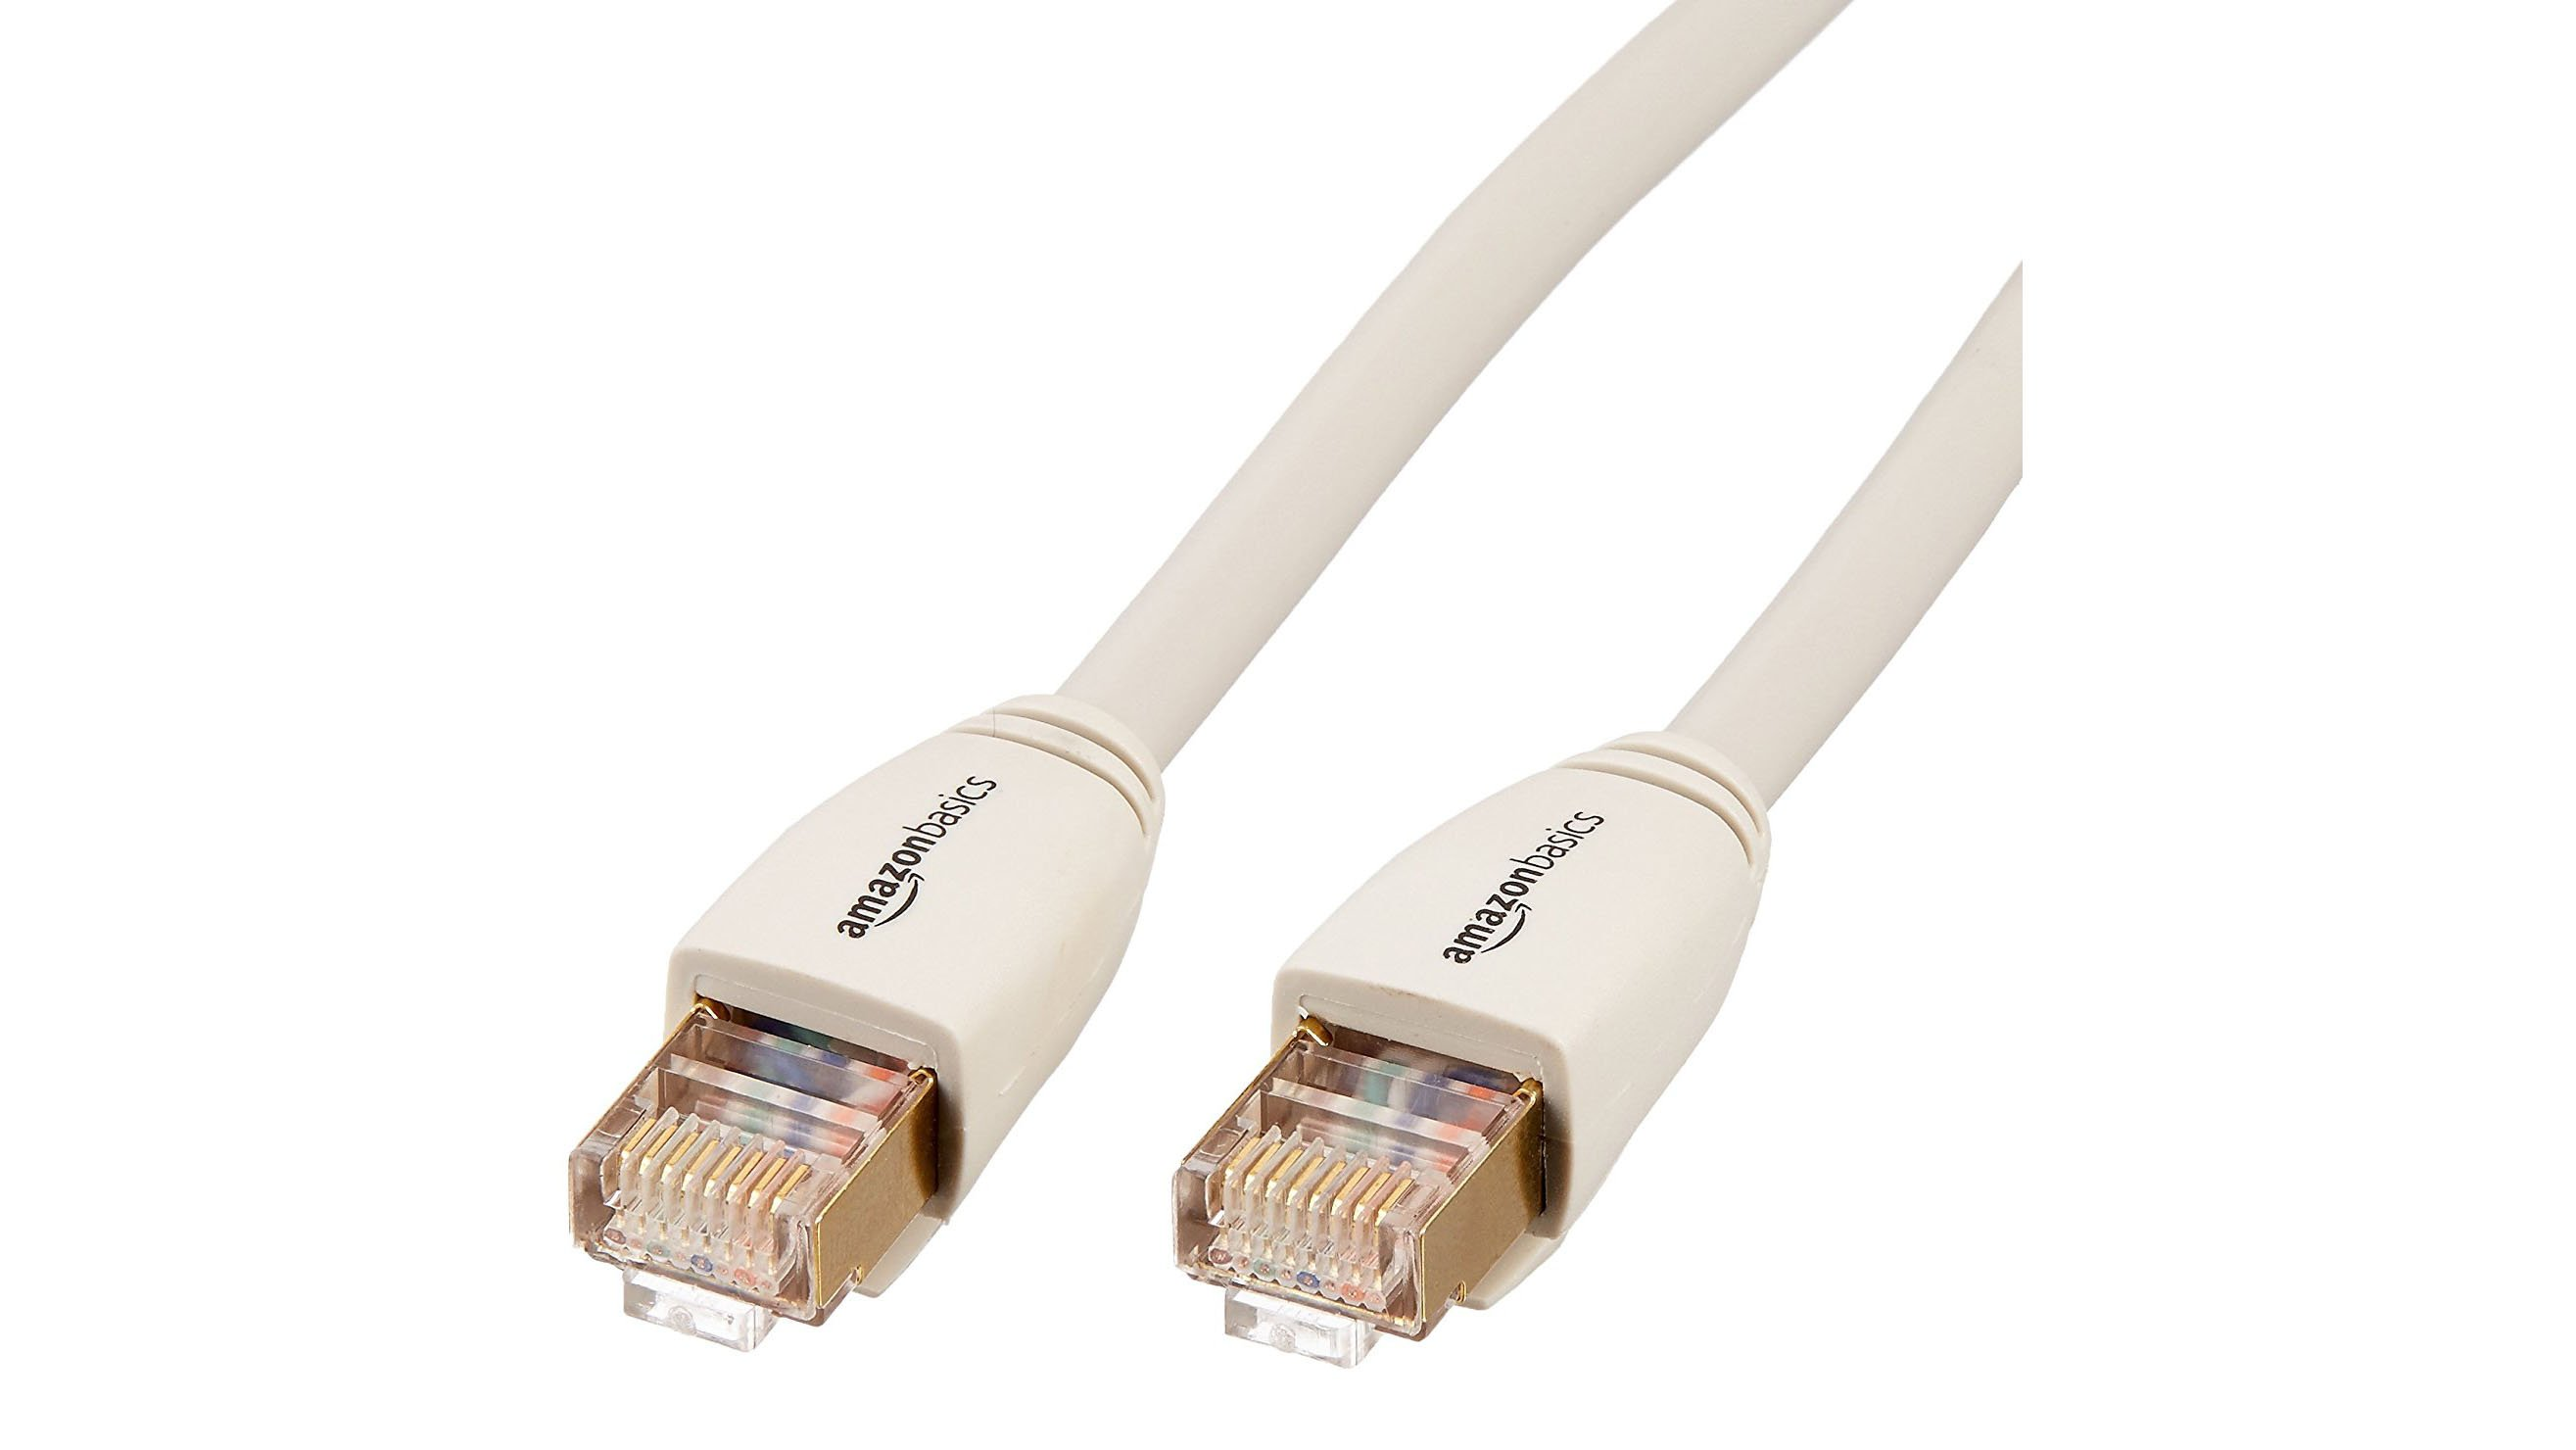 Best Ethernet Cable Fast Tangle Free Networking From Just 3 Awg Rj45 Connector Wiring It Boasts A Rock Solid Construction Internal Shielding To Protect Interference Gold Plated Connectors And Top Tier Cat7 Rating